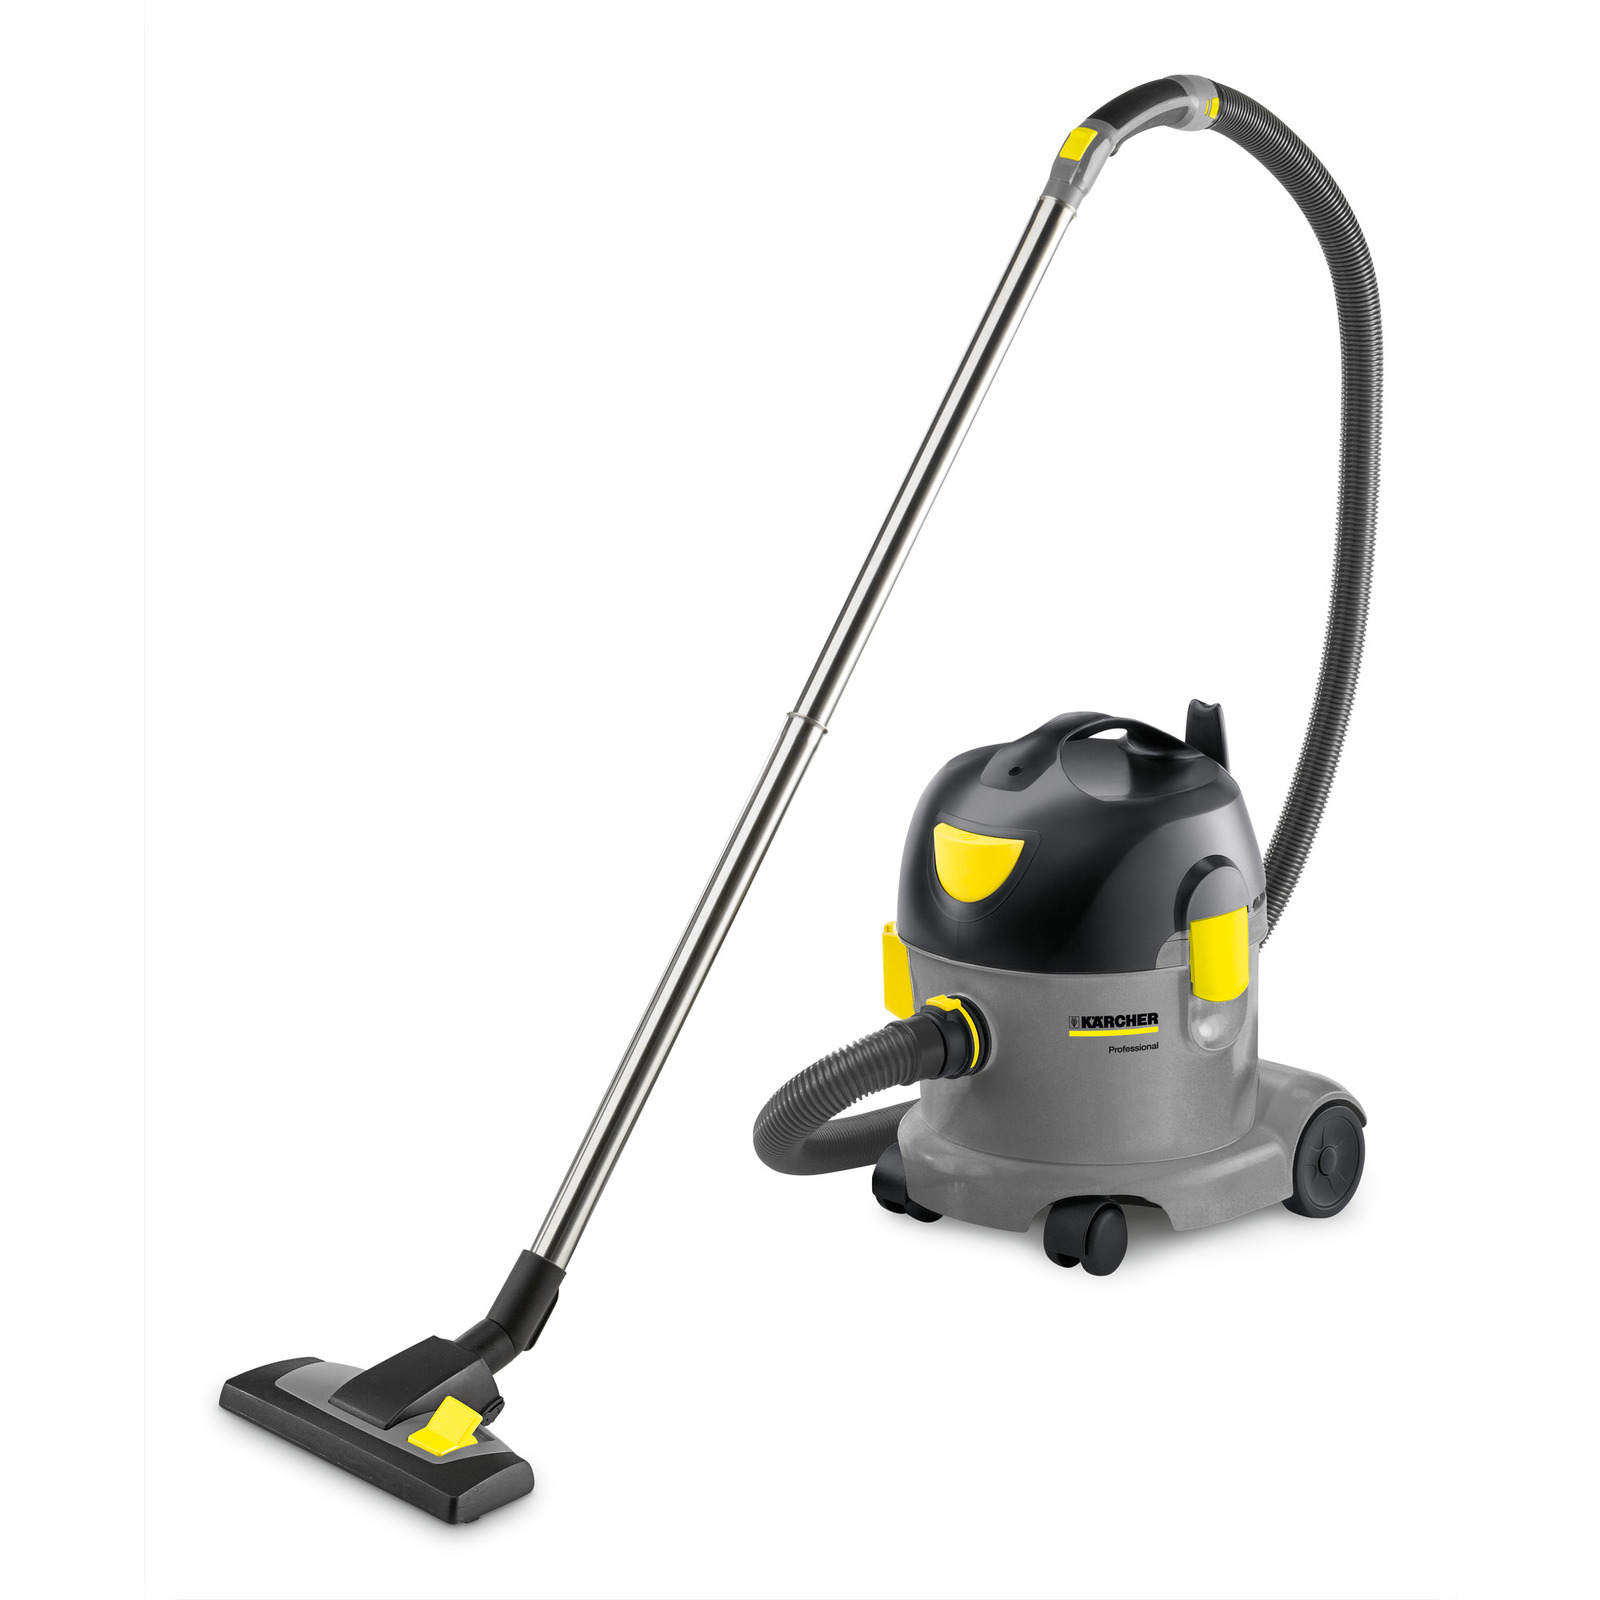 dry vacuum cleaner t 10 1 karcher singapore private limited. Black Bedroom Furniture Sets. Home Design Ideas